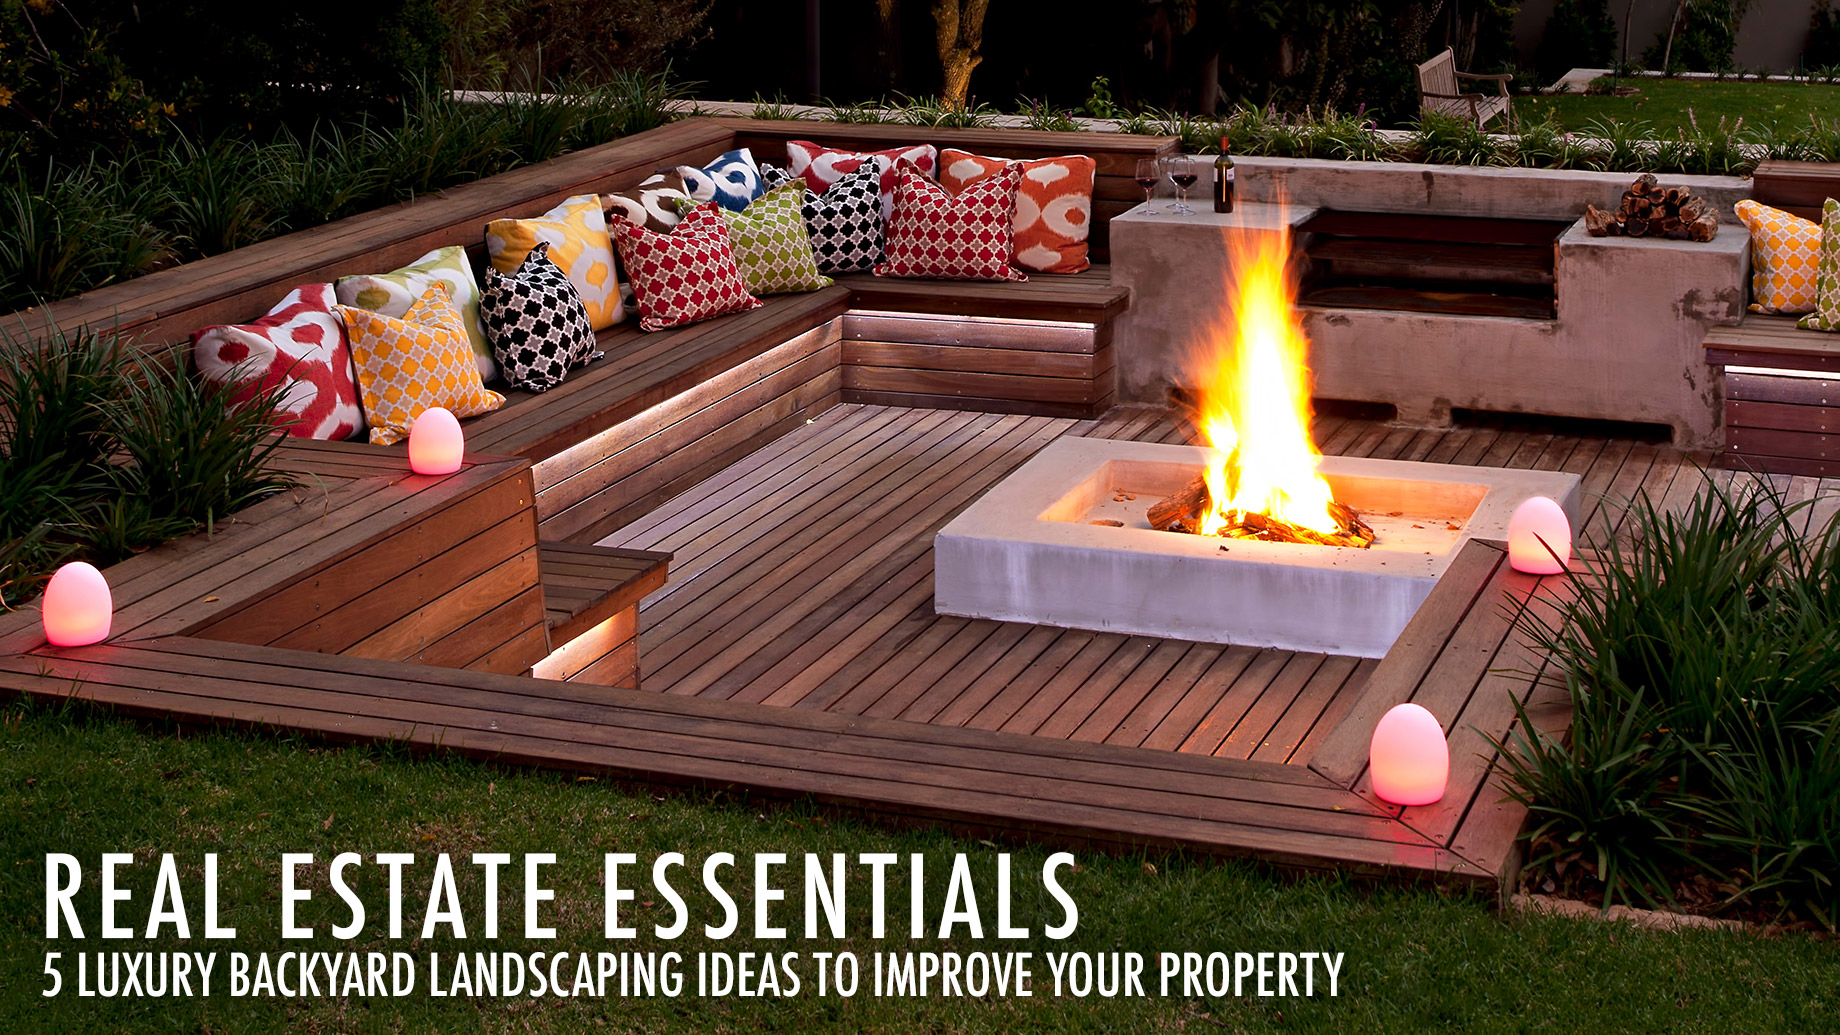 Real Estate Essentials - 5 Luxury Backyard Landscaping Ideas to Improve Your Property